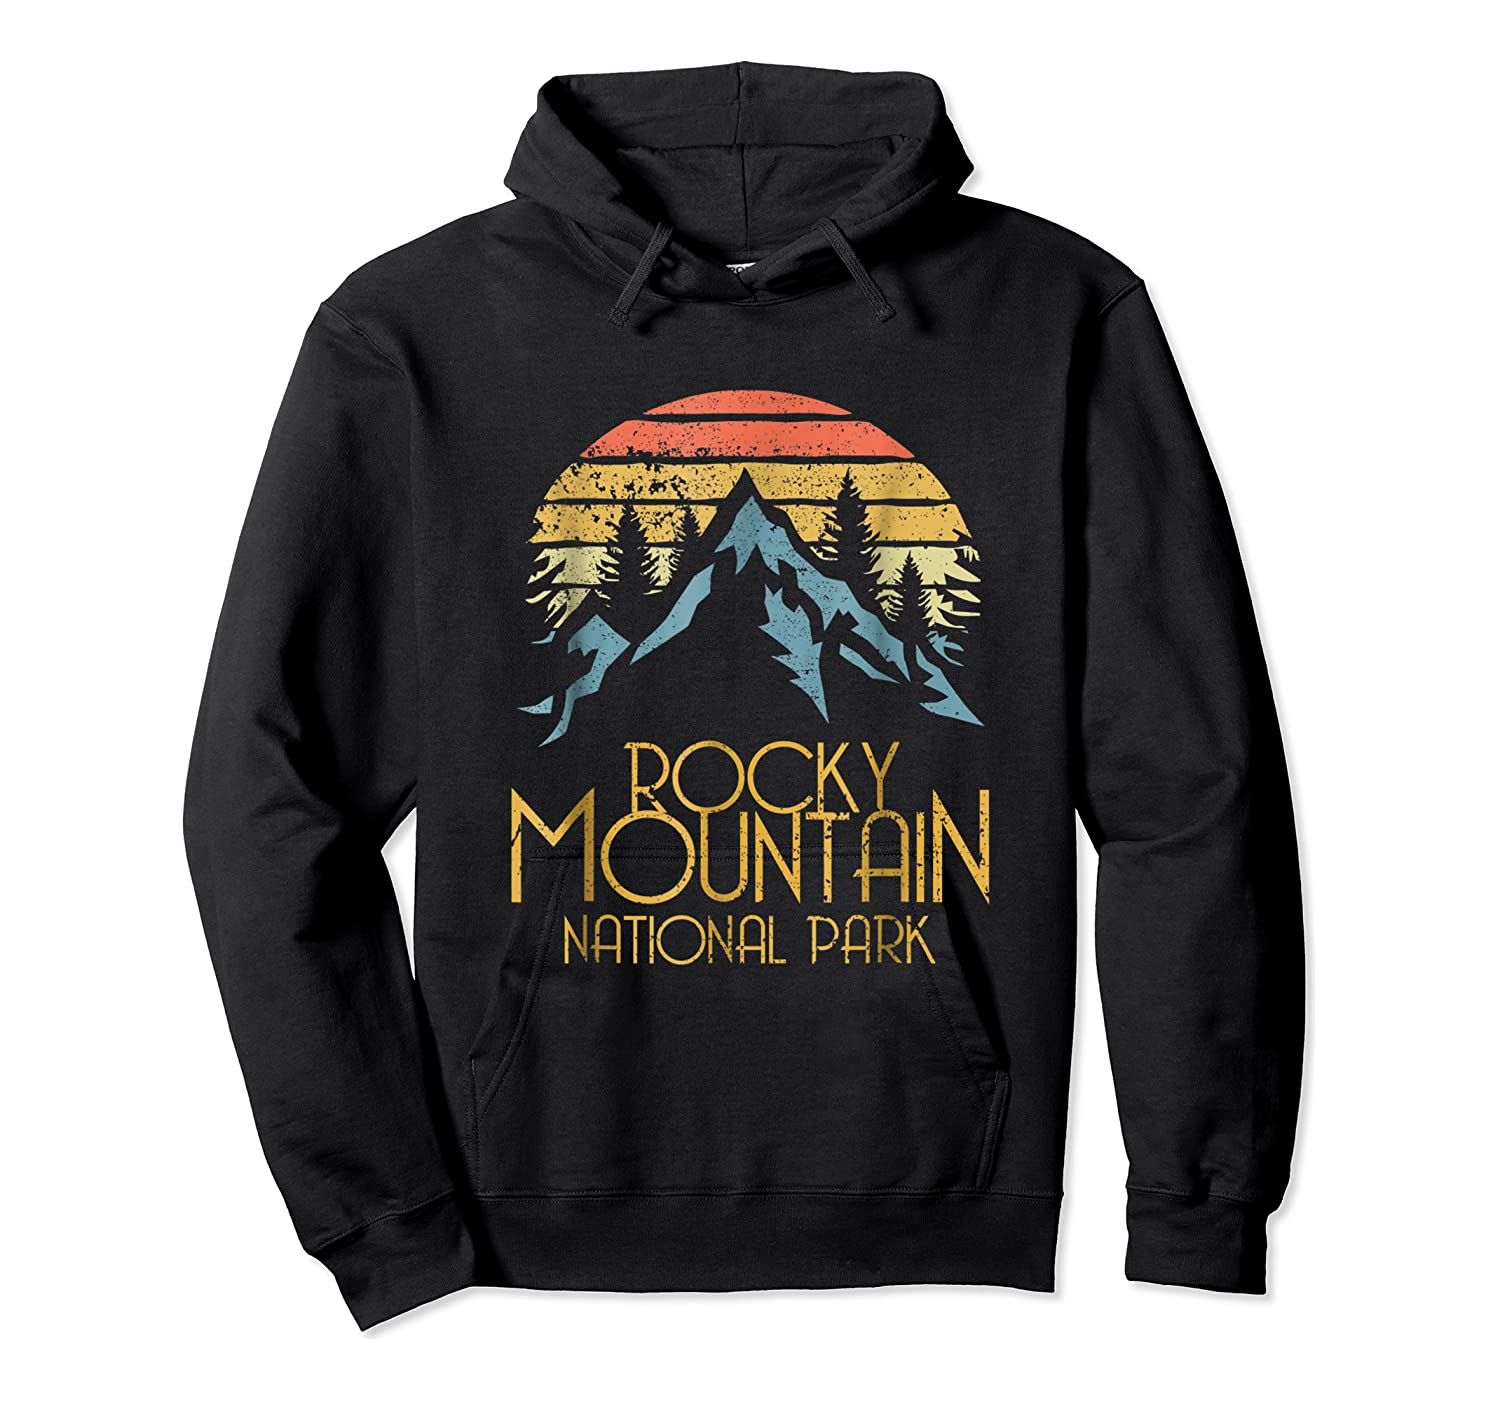 Vintage Rocky Mountains National Park Colorado Retro Shirts Unisex Pullover Hoodie